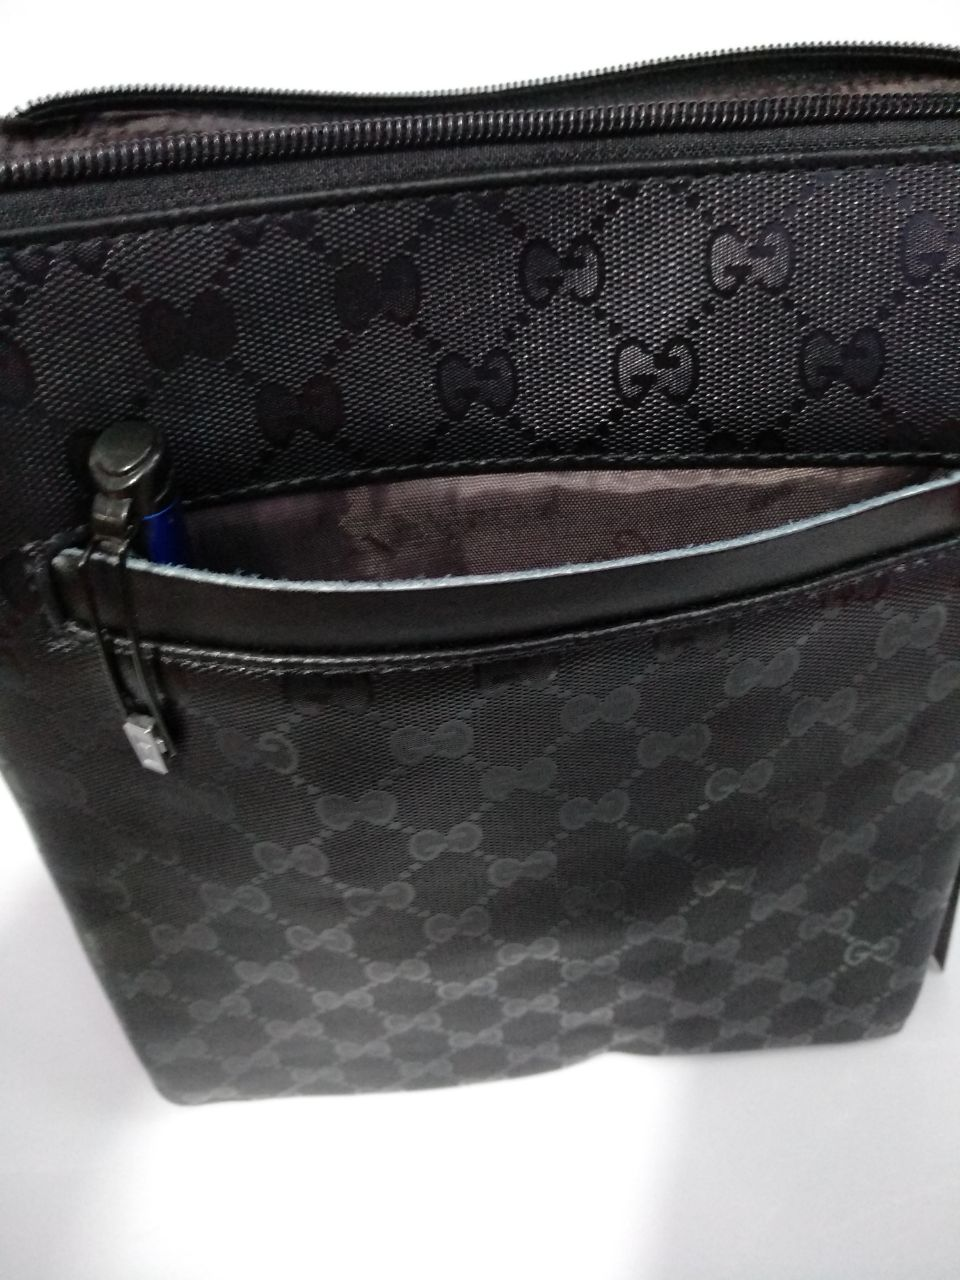 06664f1e89b Branded Products   GUCCI MENS SLING  SIZE 8 BY 10 3 PARTITION FRONT POCKET  BACK CHAIN